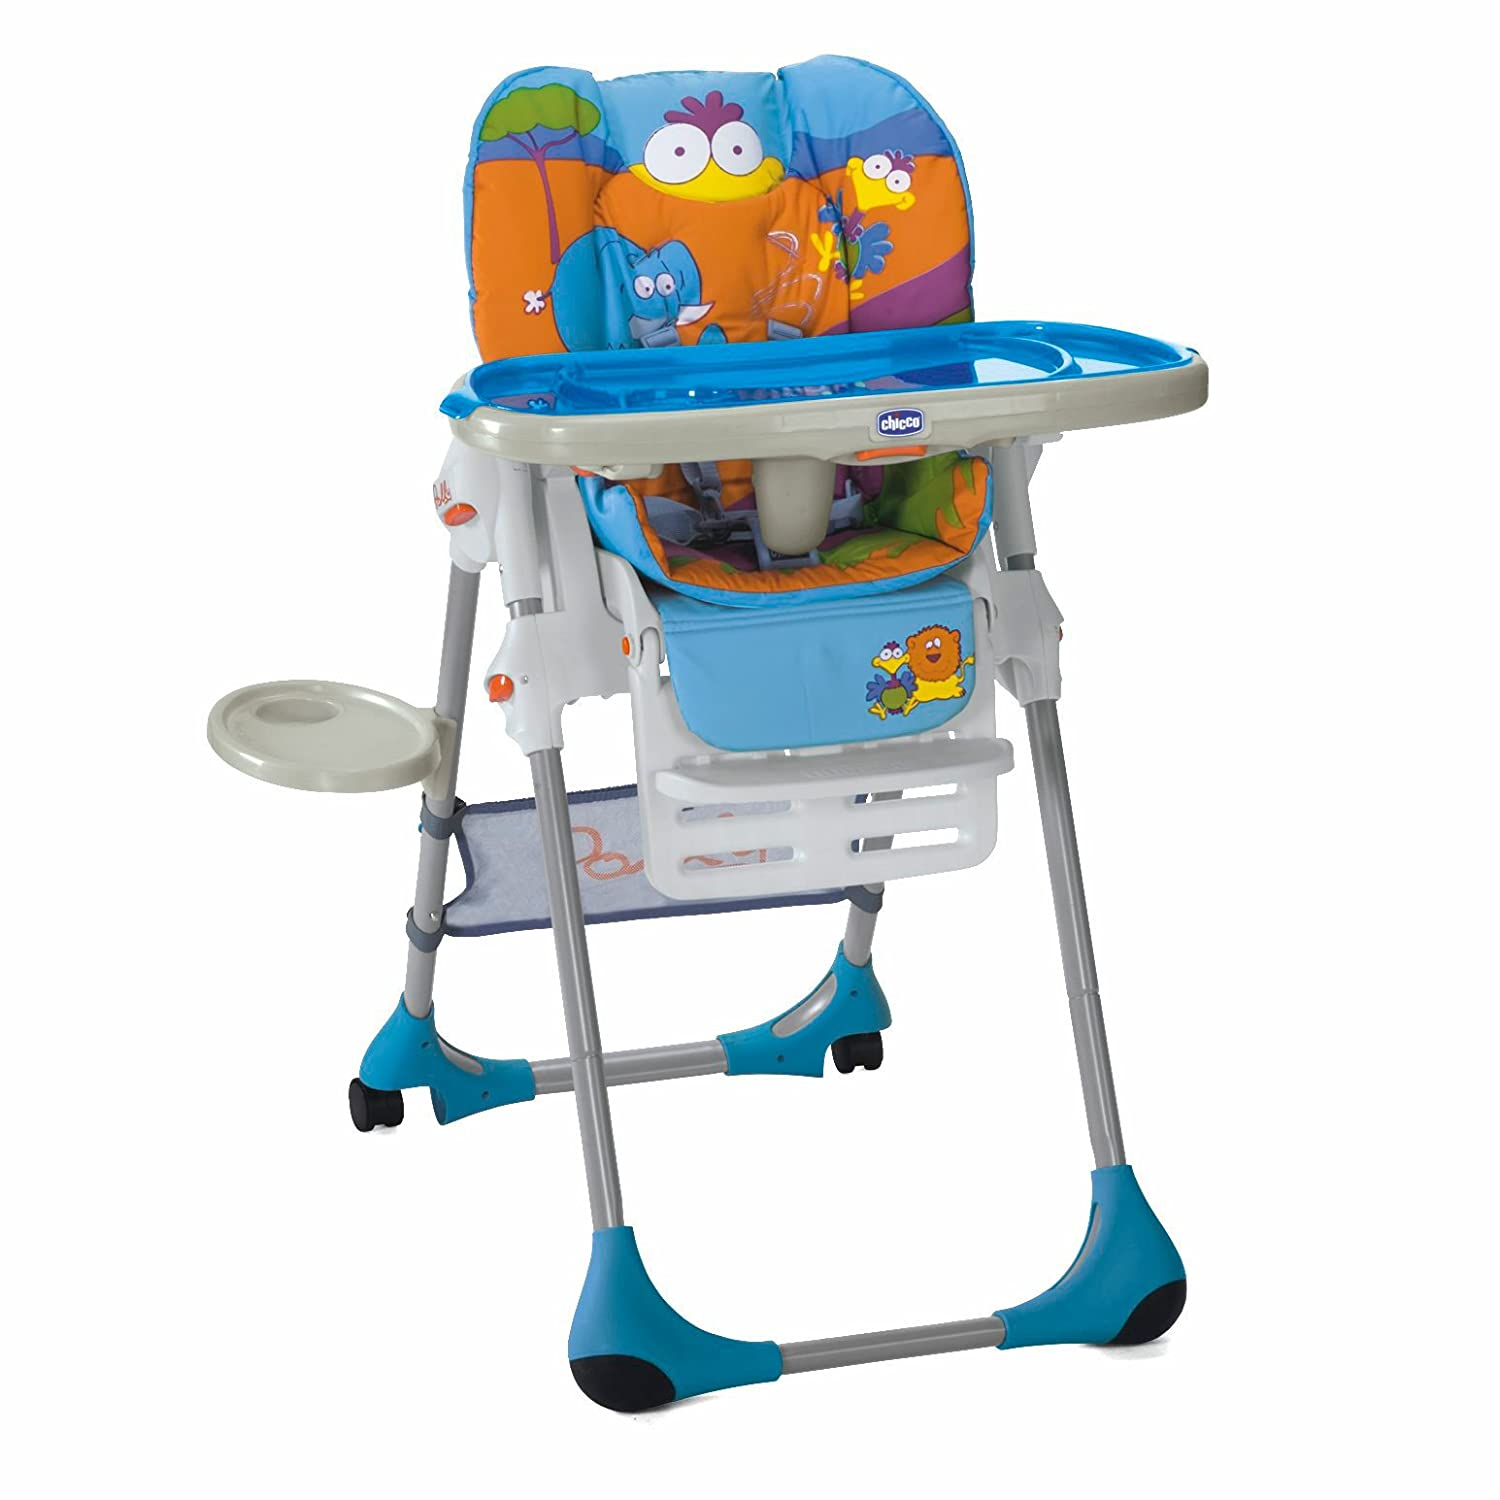 Buy Chicco Polly 7 in 7 Highchair (Blue) Online at Low Prices in